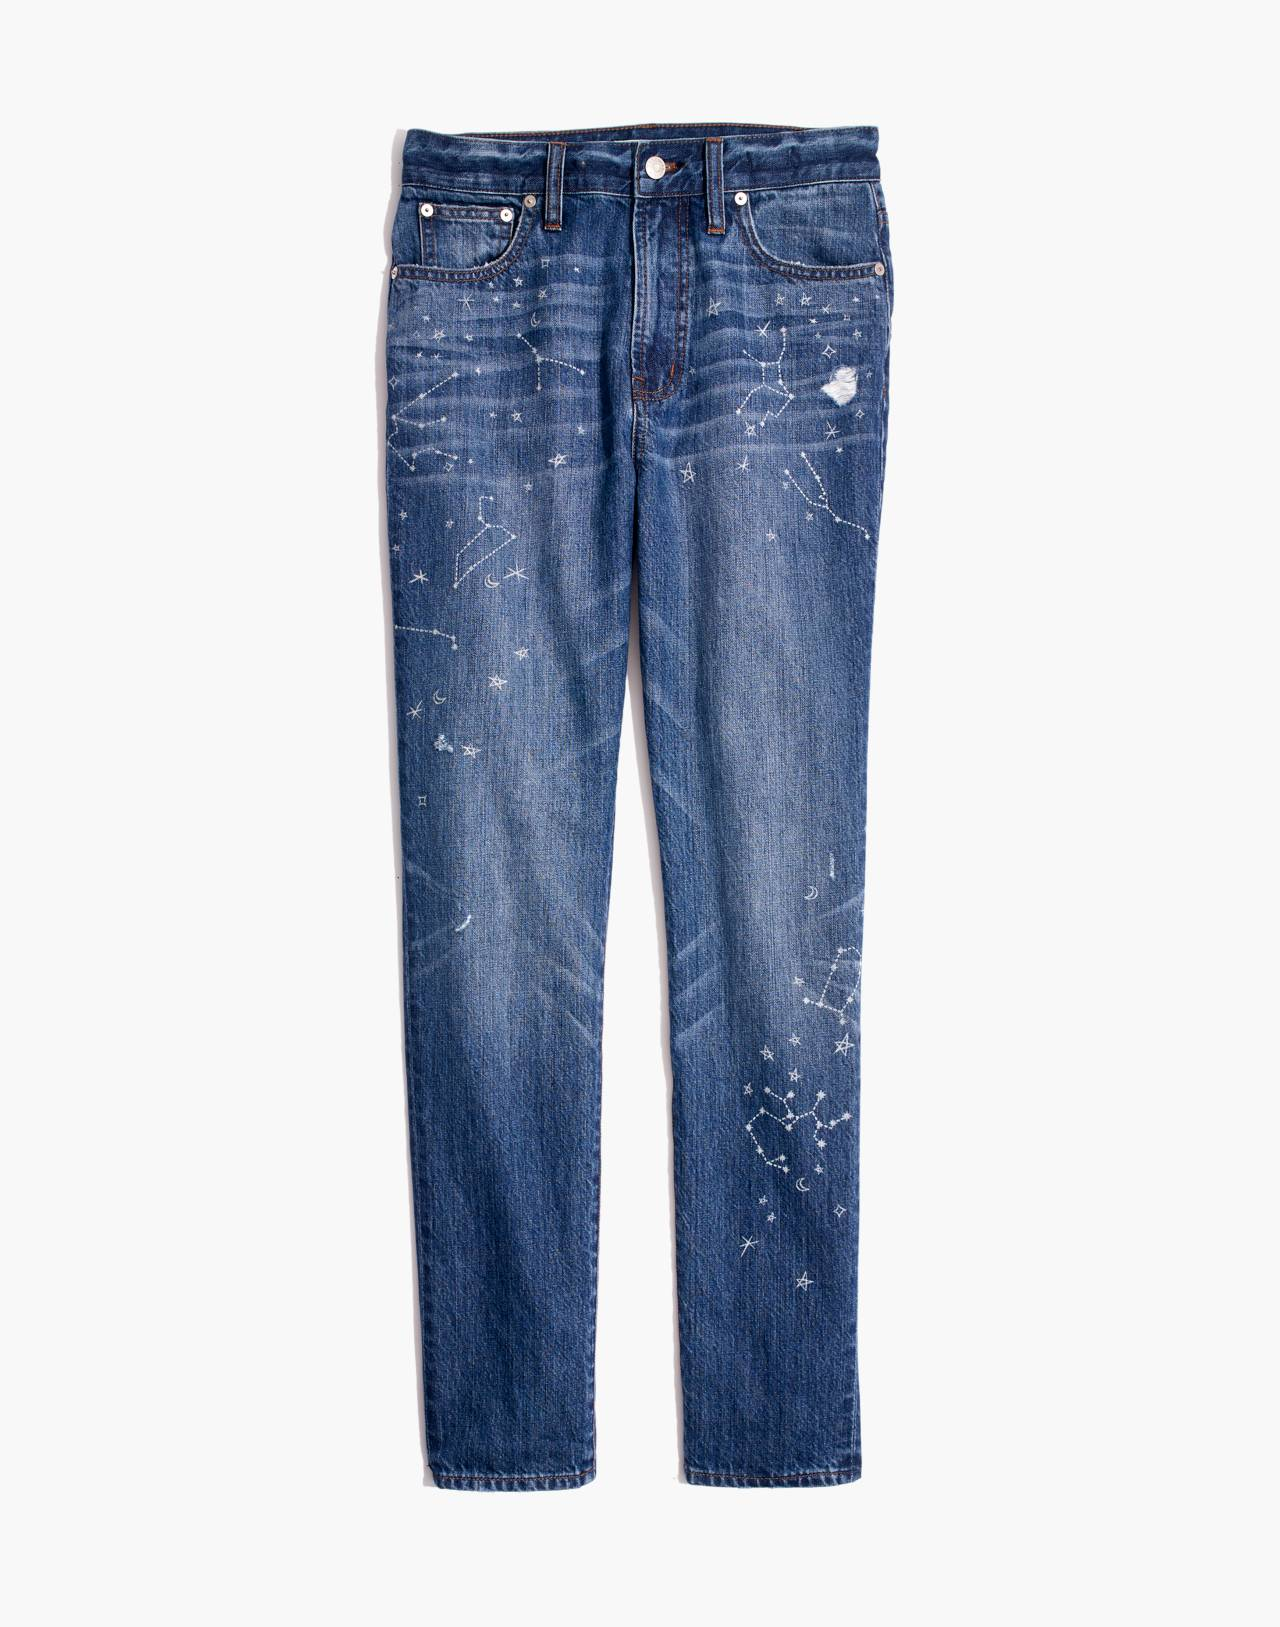 The Tall Perfect Vintage Jean: Comet Edition in jubilee wash image 4